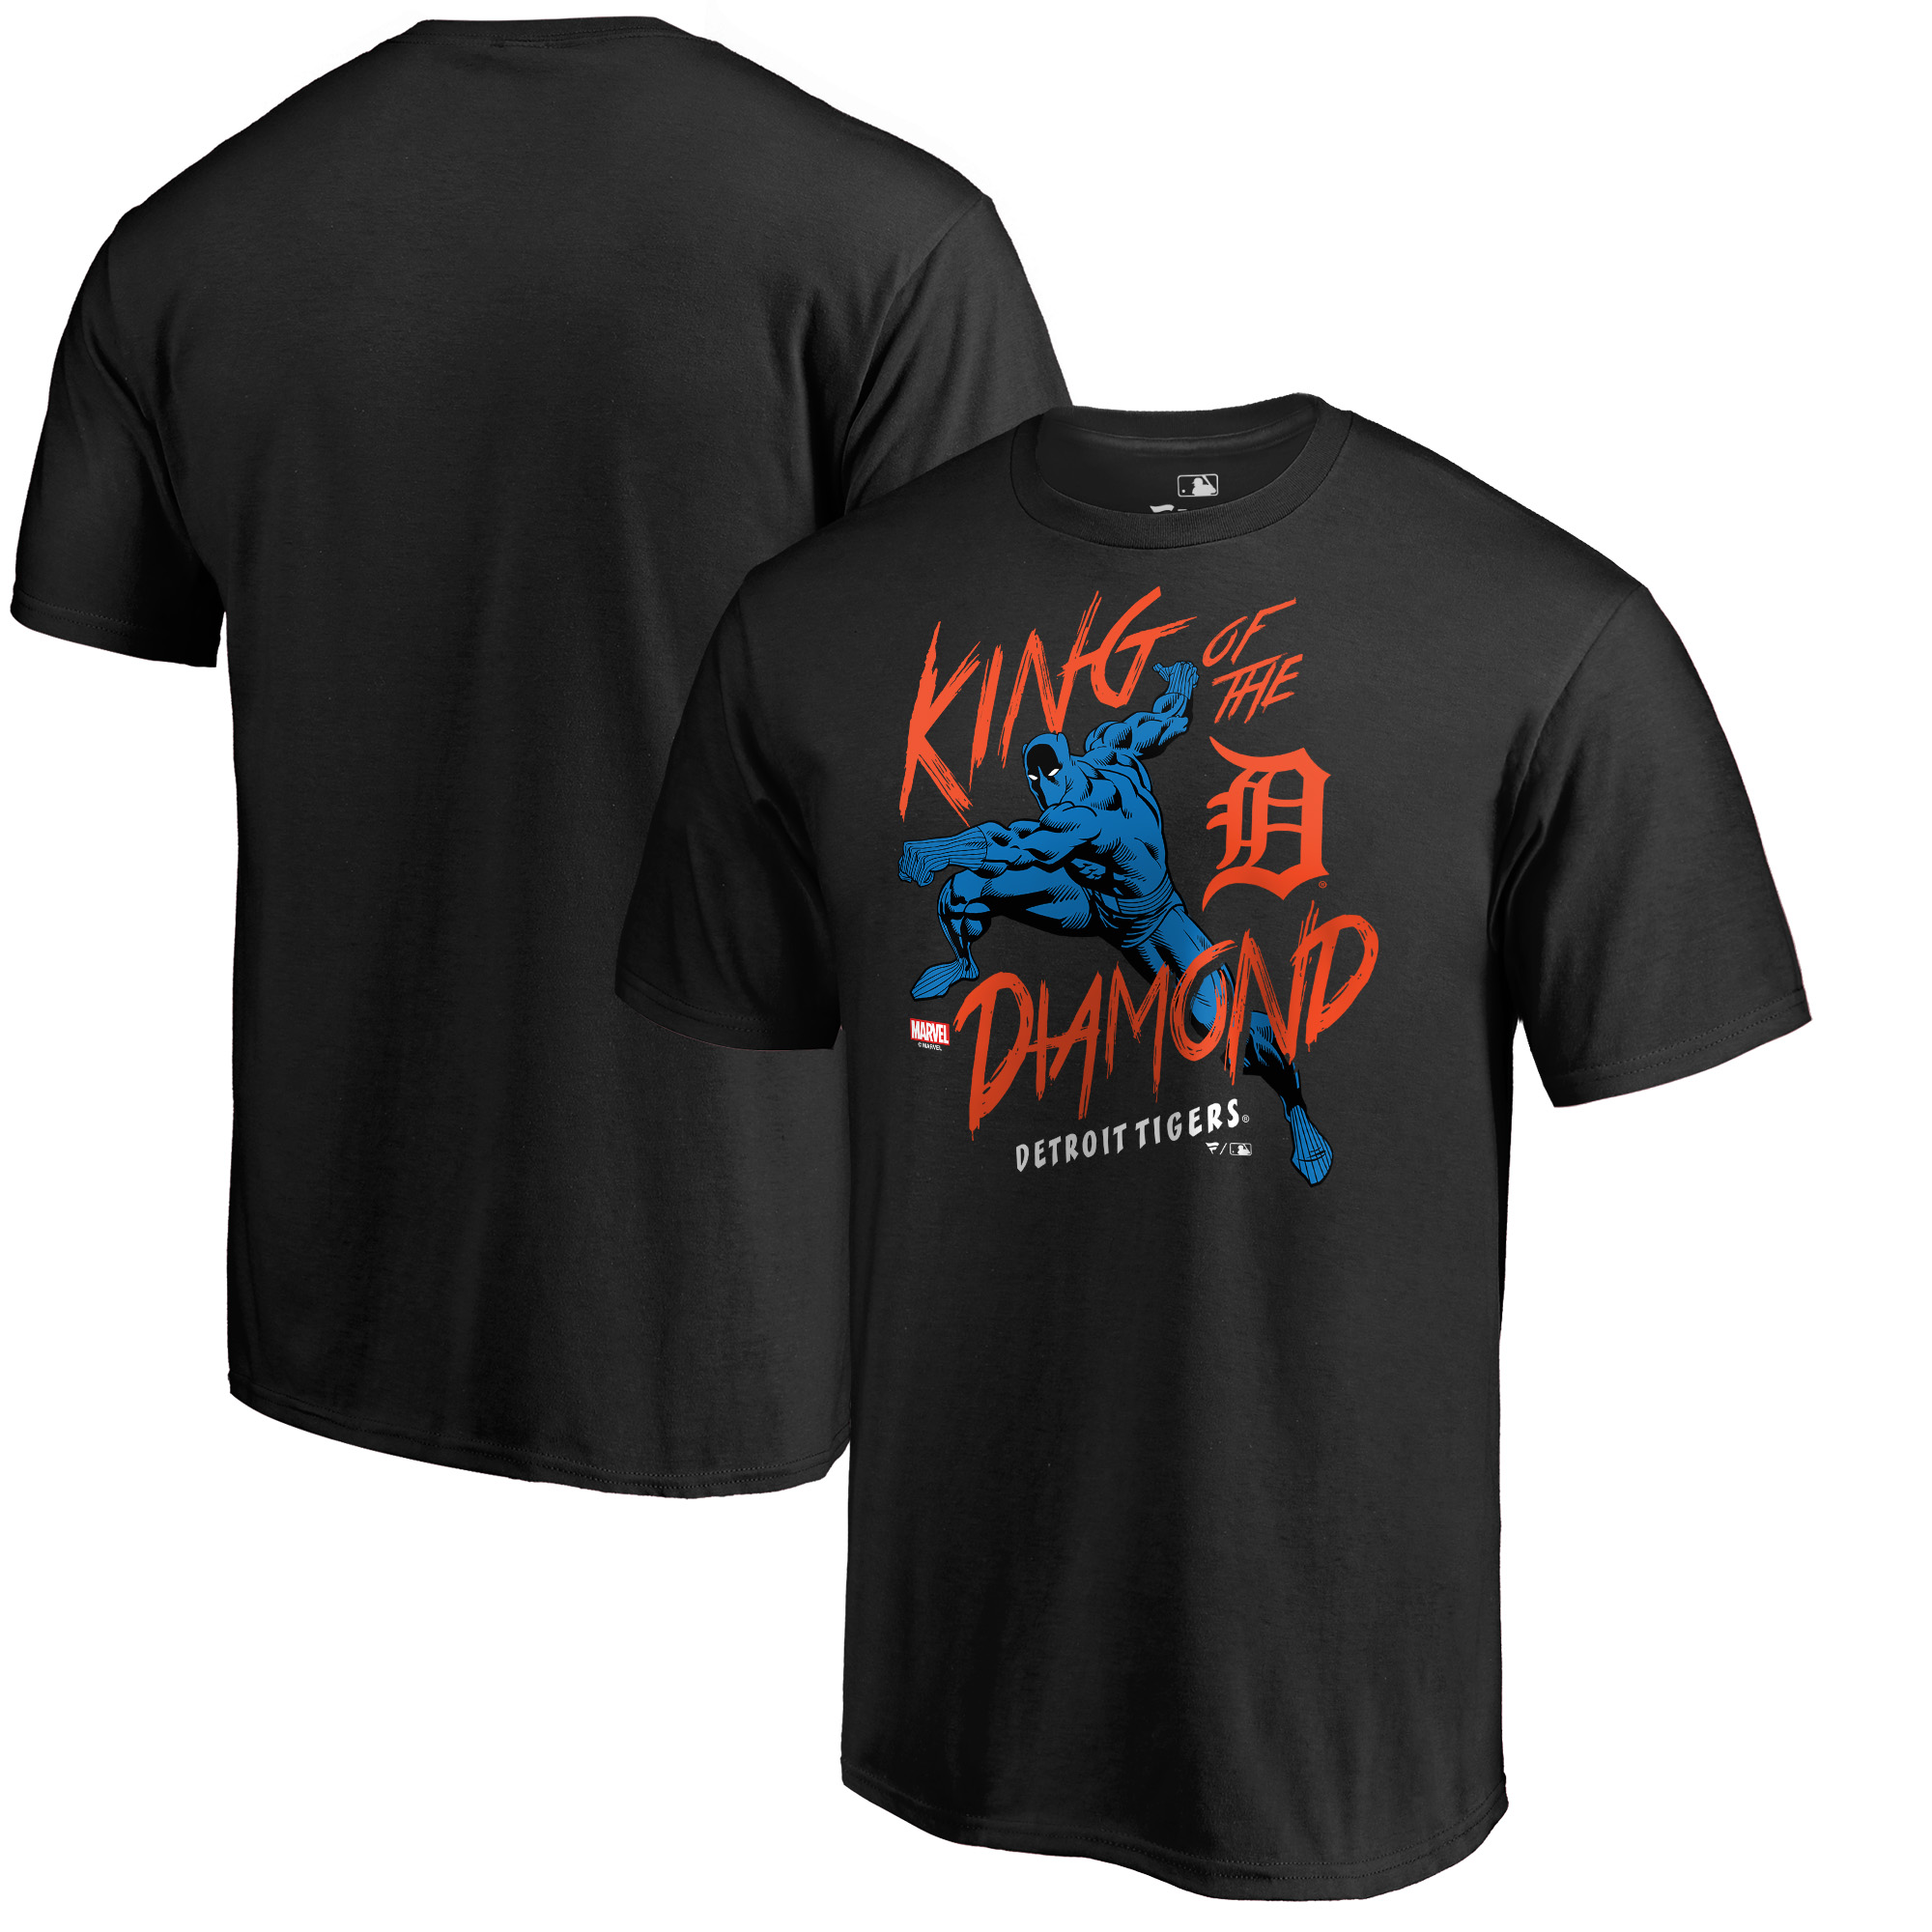 Detroit Tigers Fanatics Branded MLB Marvel Black Panther King of the Diamond T-Shirt - Black